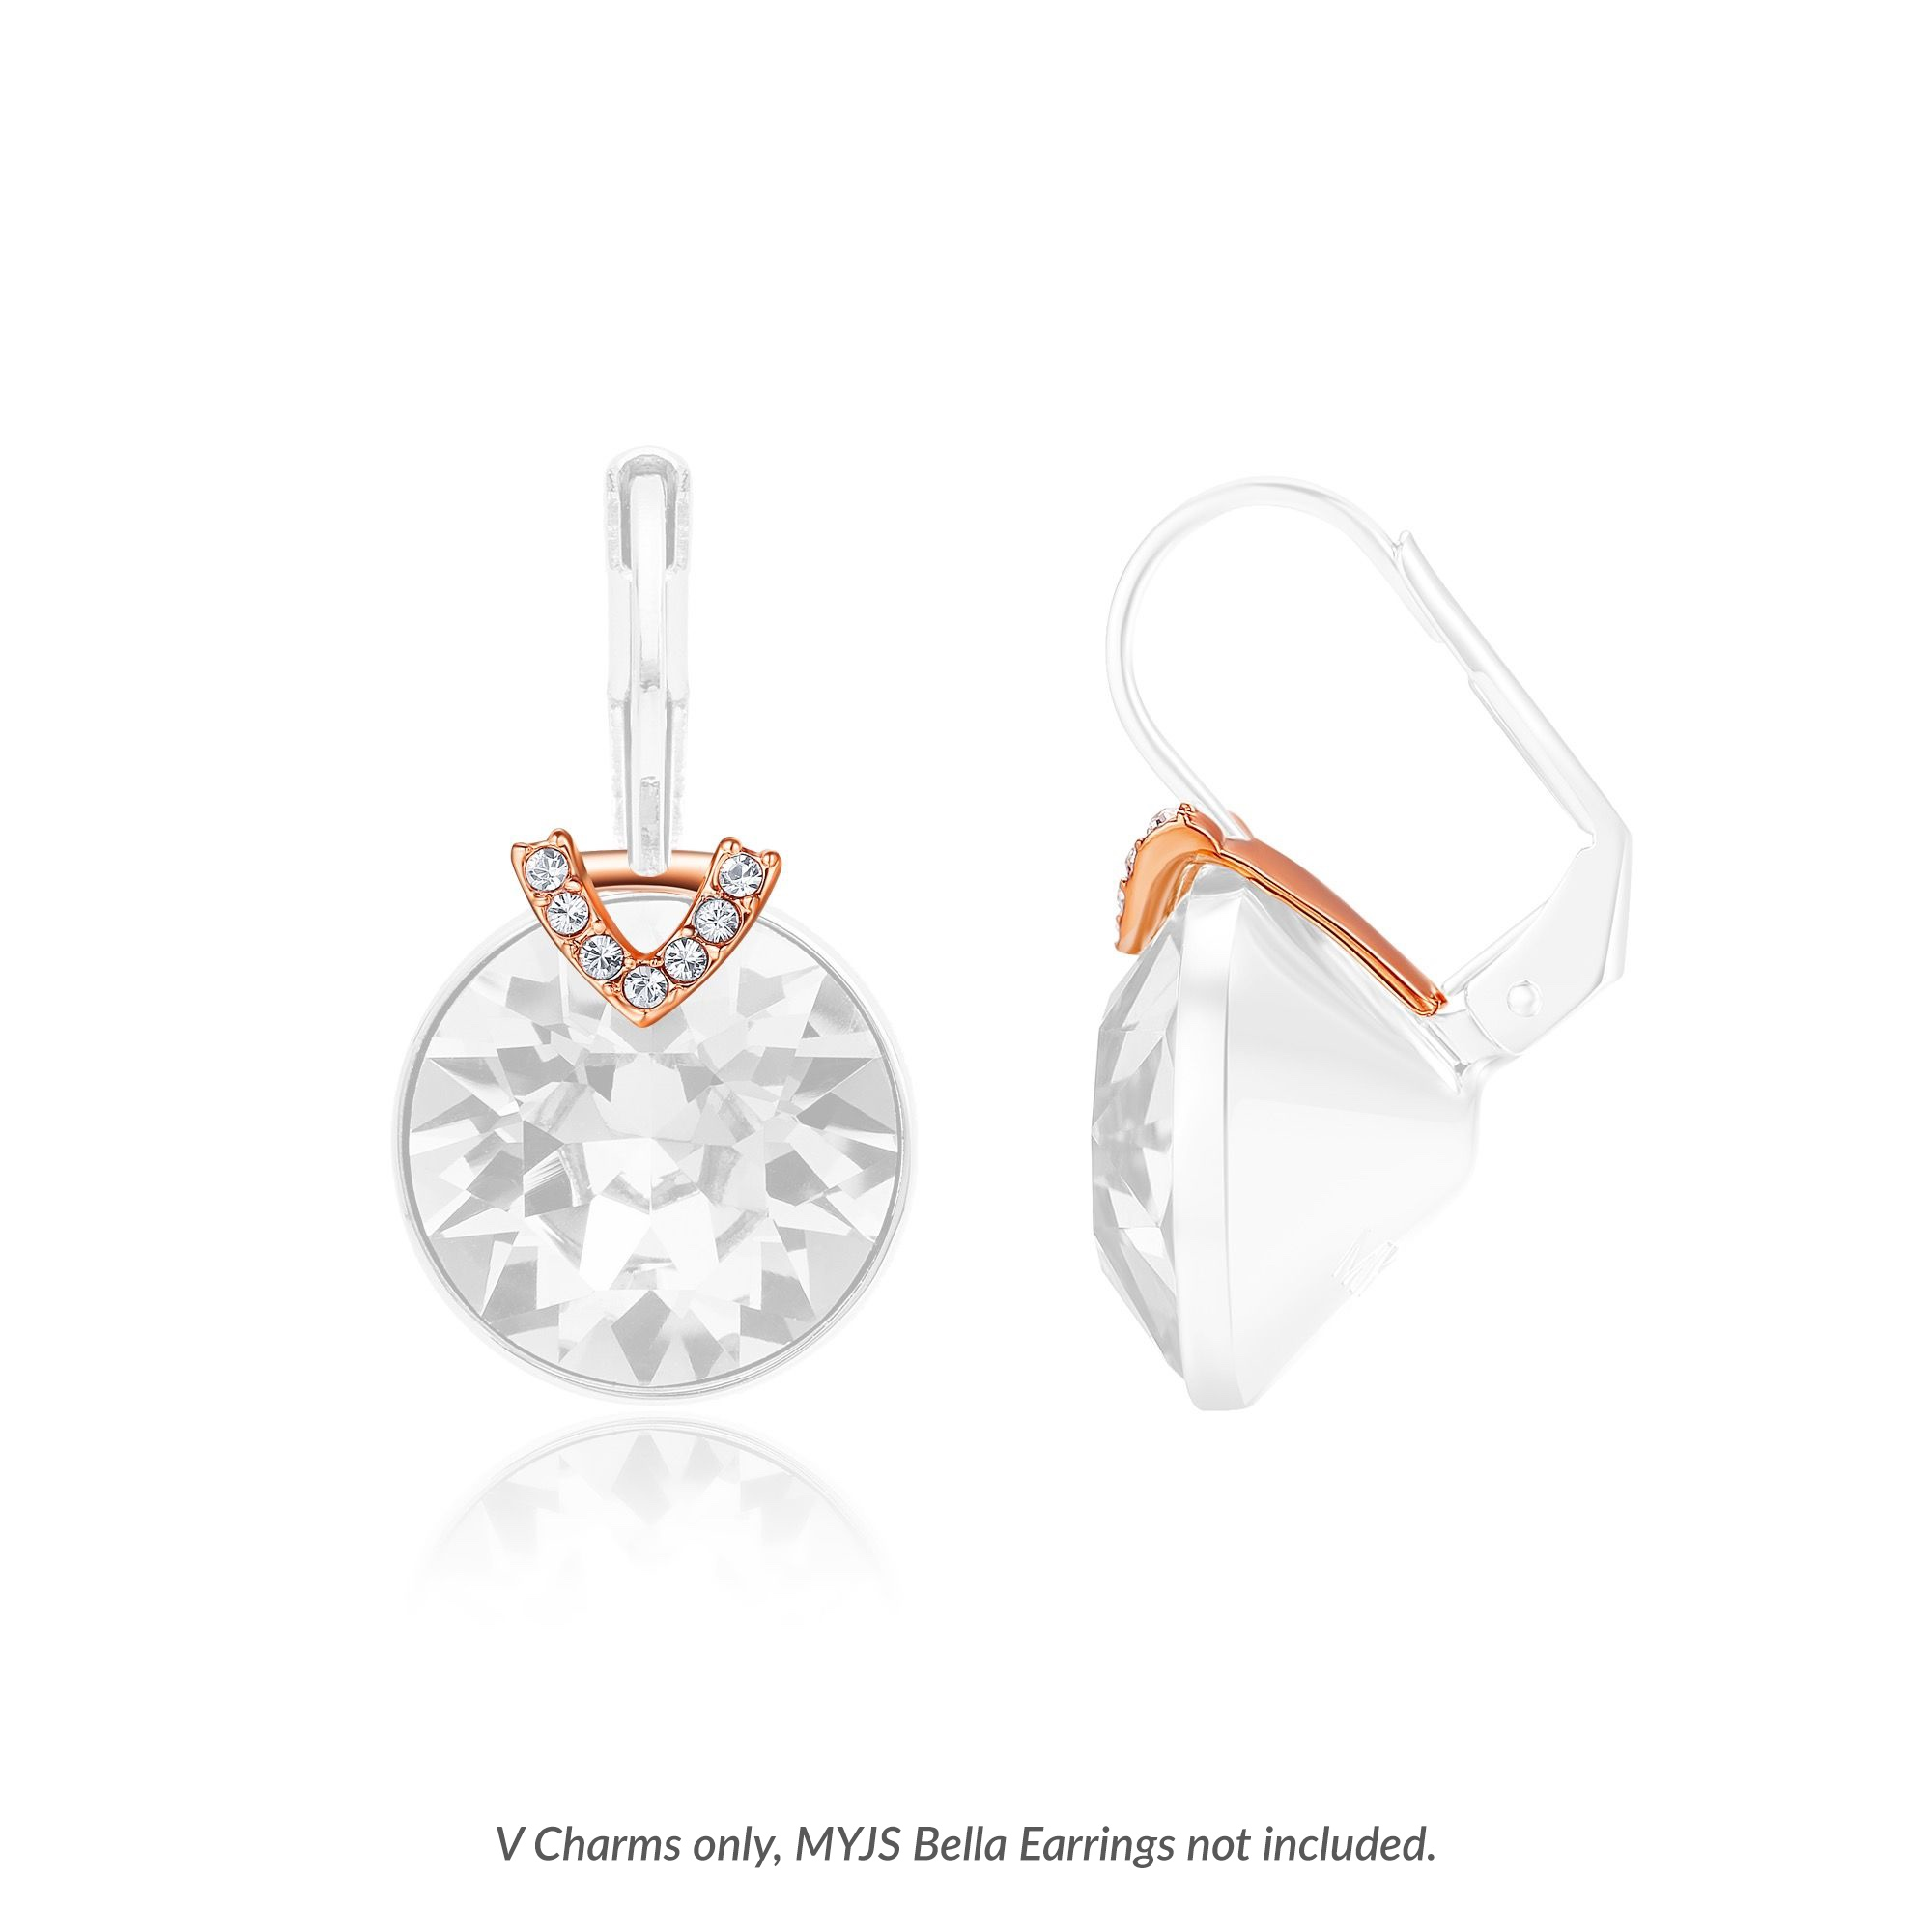 80454f0cd Bella 4 Carat Earrings V Charms with Swarovski Crystals Rose Gold Plated